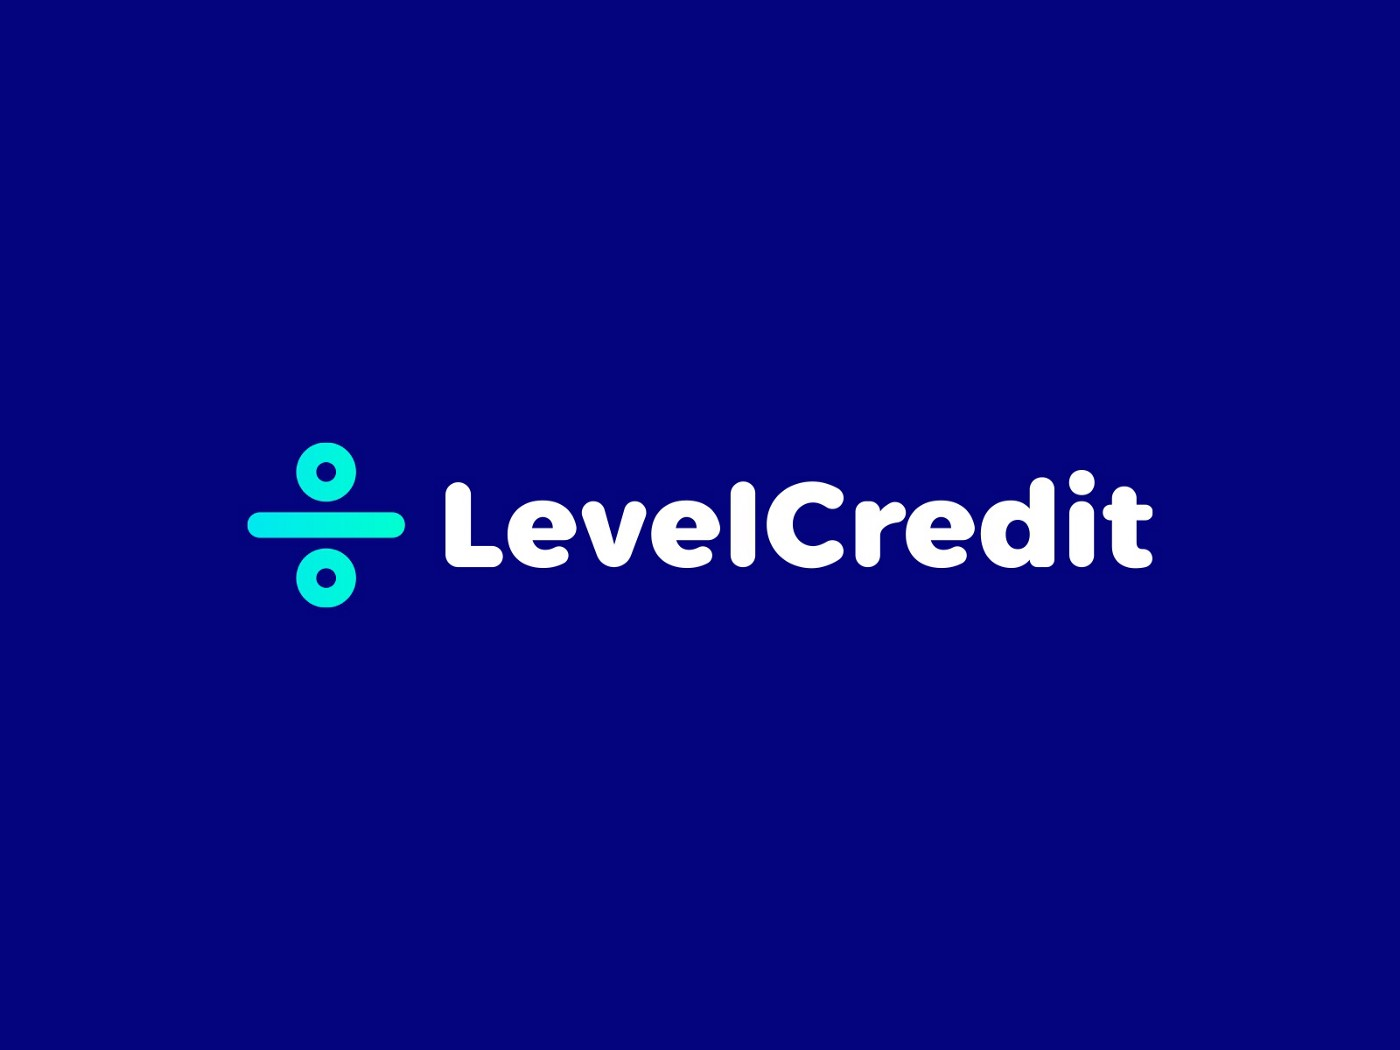 LevelCredit